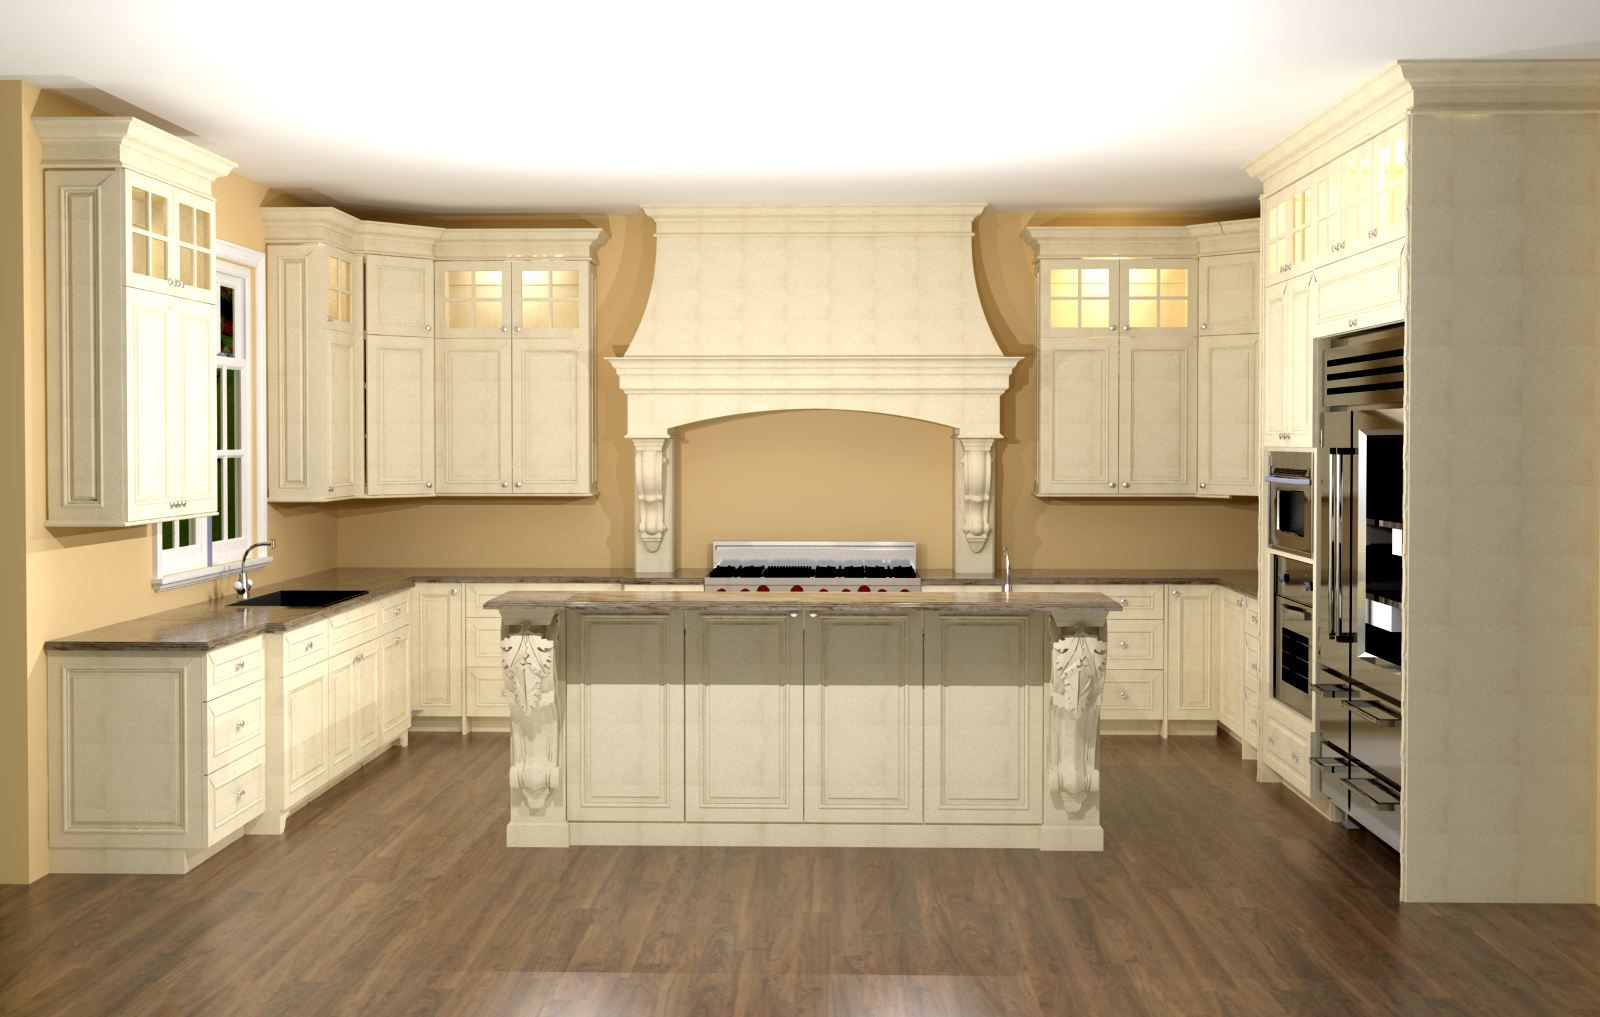 Large Kitchen with Custom Hood Features Large Enkeboll Corbels On. 1 Bedroom Apartment Decorating Ideas. Rental Apartment Smart Decorating Ideas Youtube Apartment. Studio Bachelor Bachelorette Apartment House Home